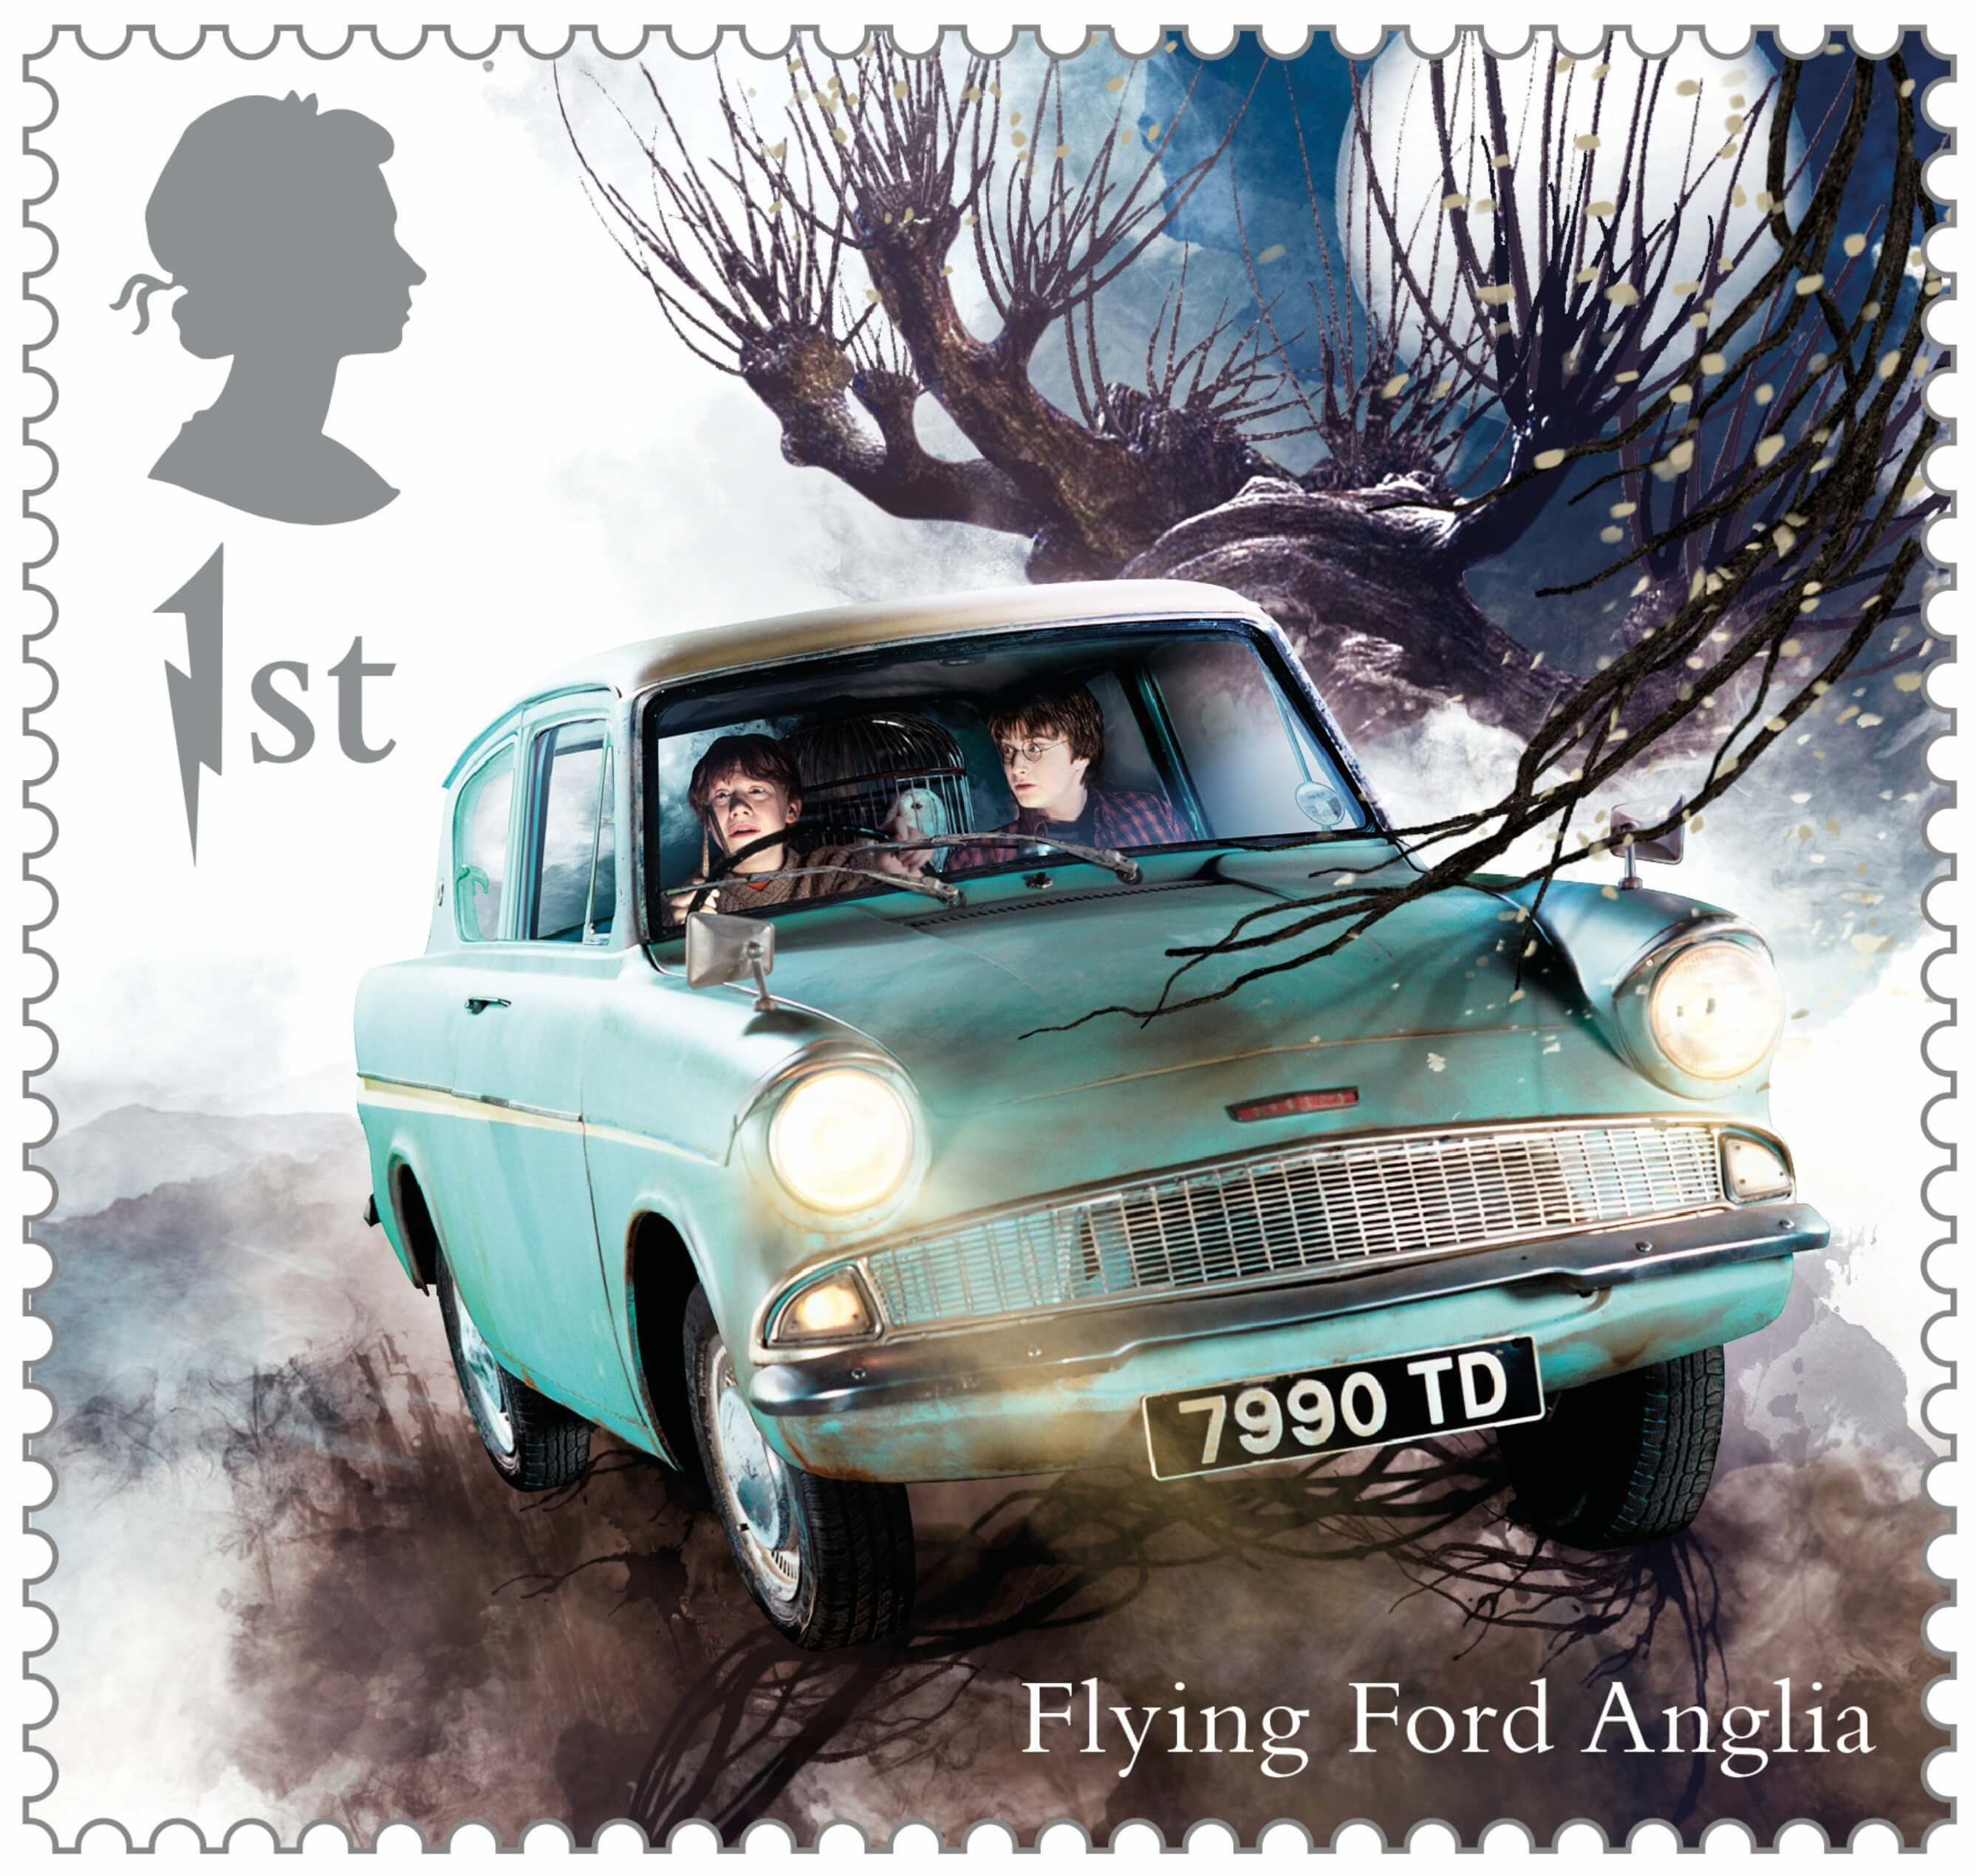 Great Britain 2018 Harry Potter 04 15 Flying Ford Anglia